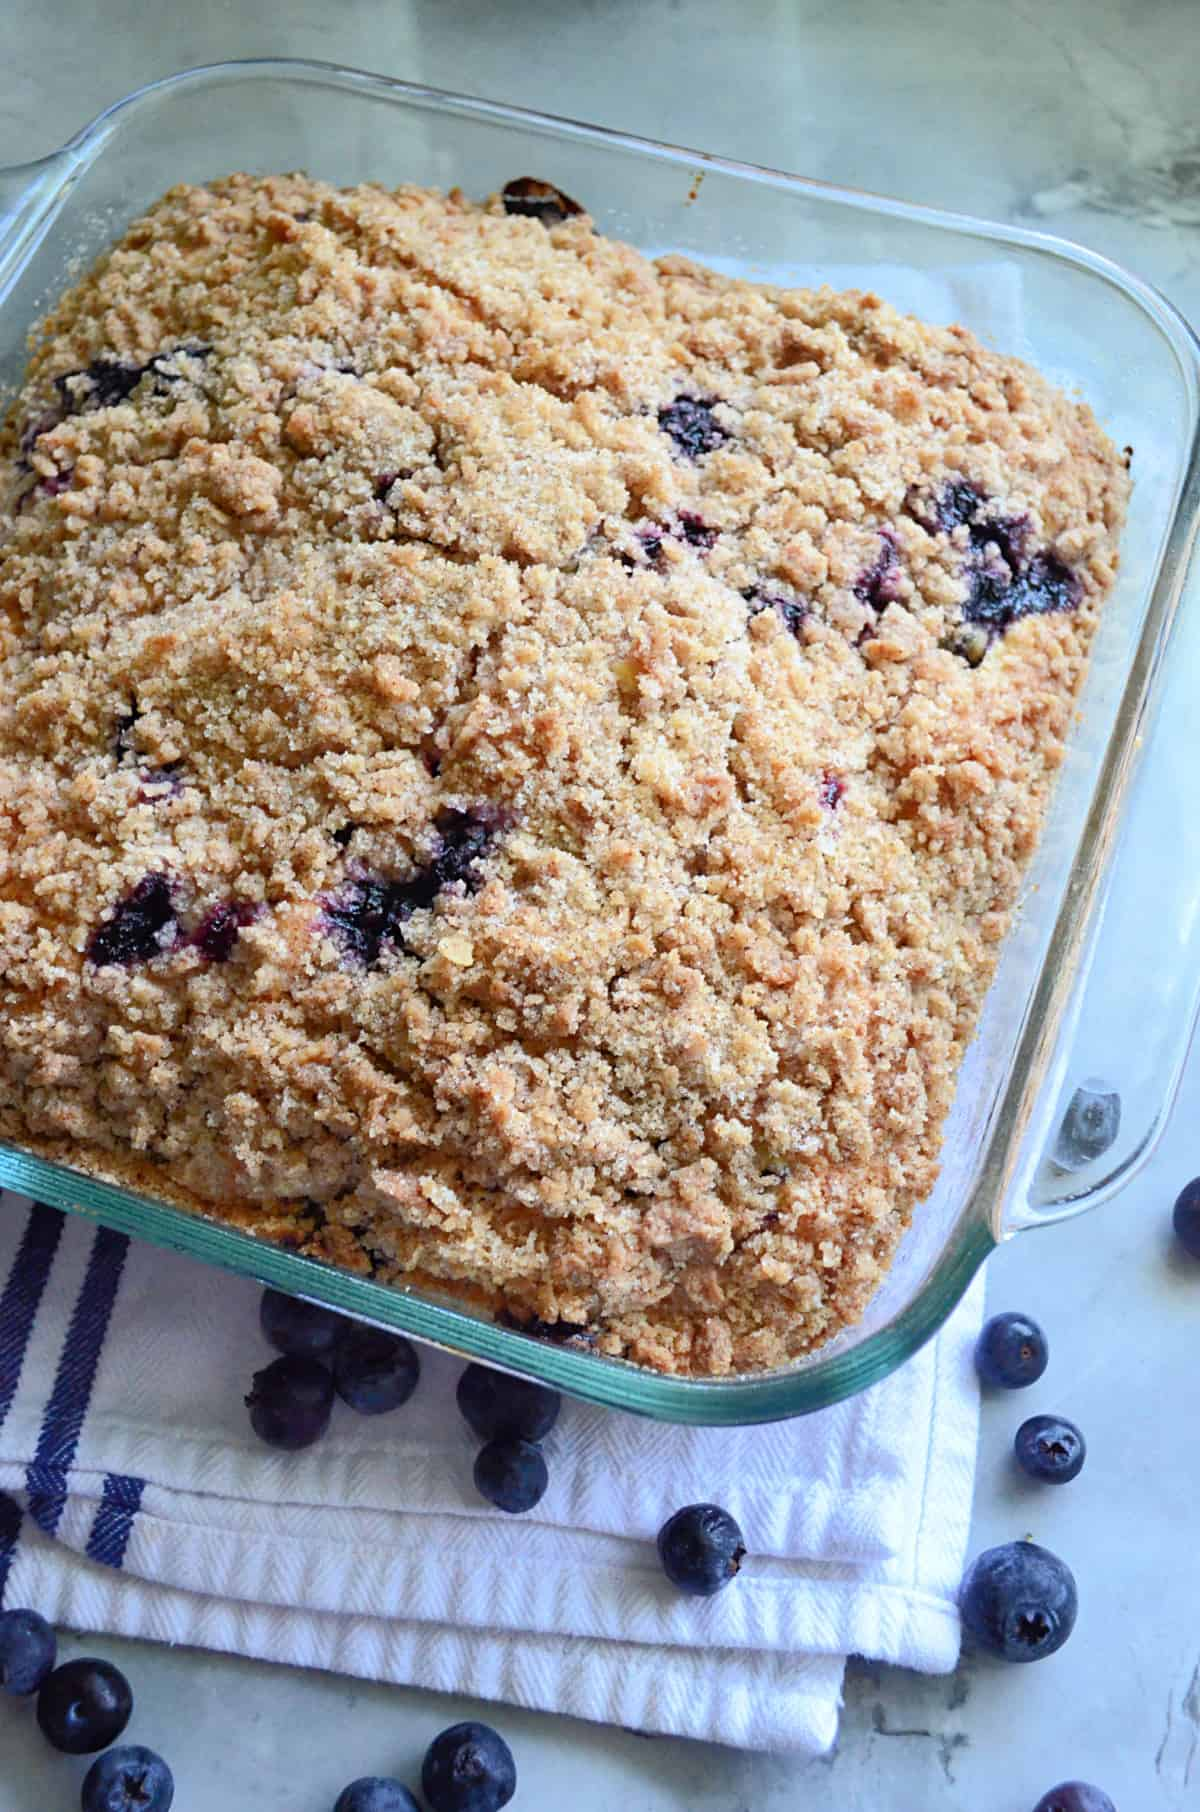 Square glass baking dish filled with a blueberry cake with blueberries on the counter around it.